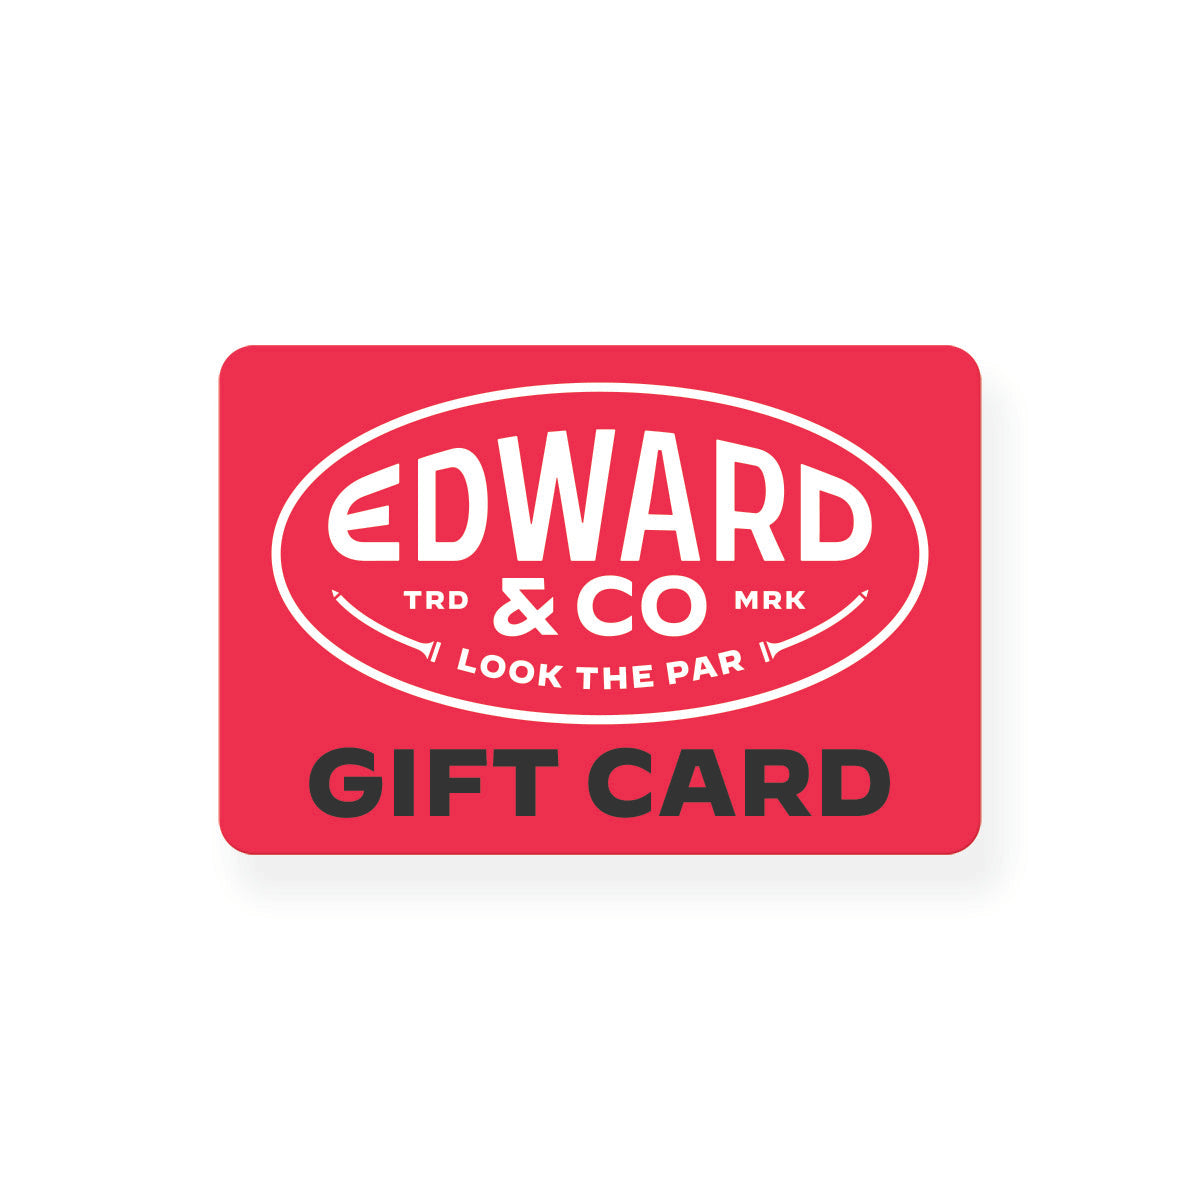 Edward & Co. Gift Card